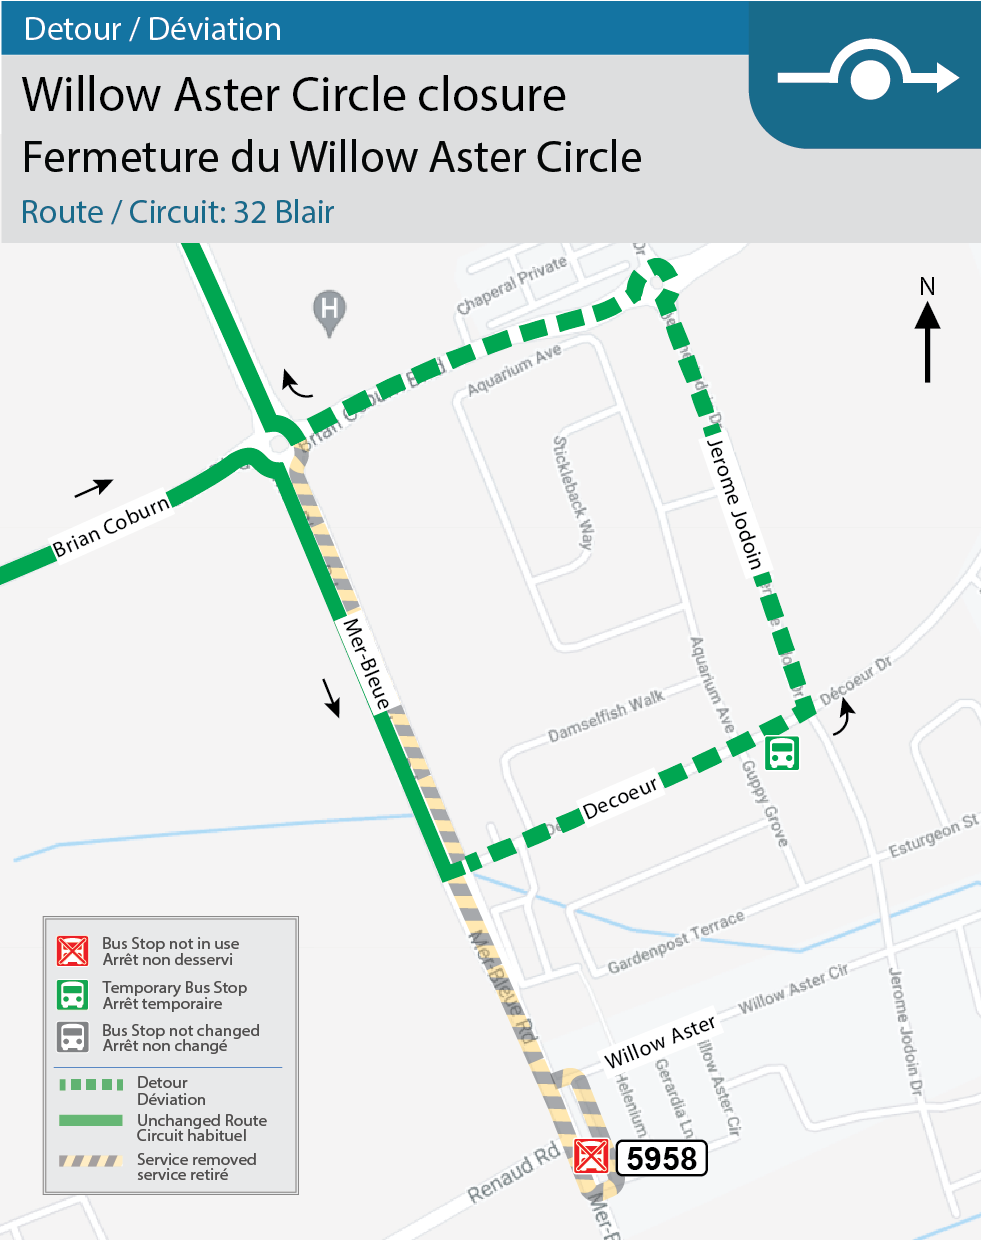 Map for Routes 32 Blair, Willow Aster Circle detour for construction